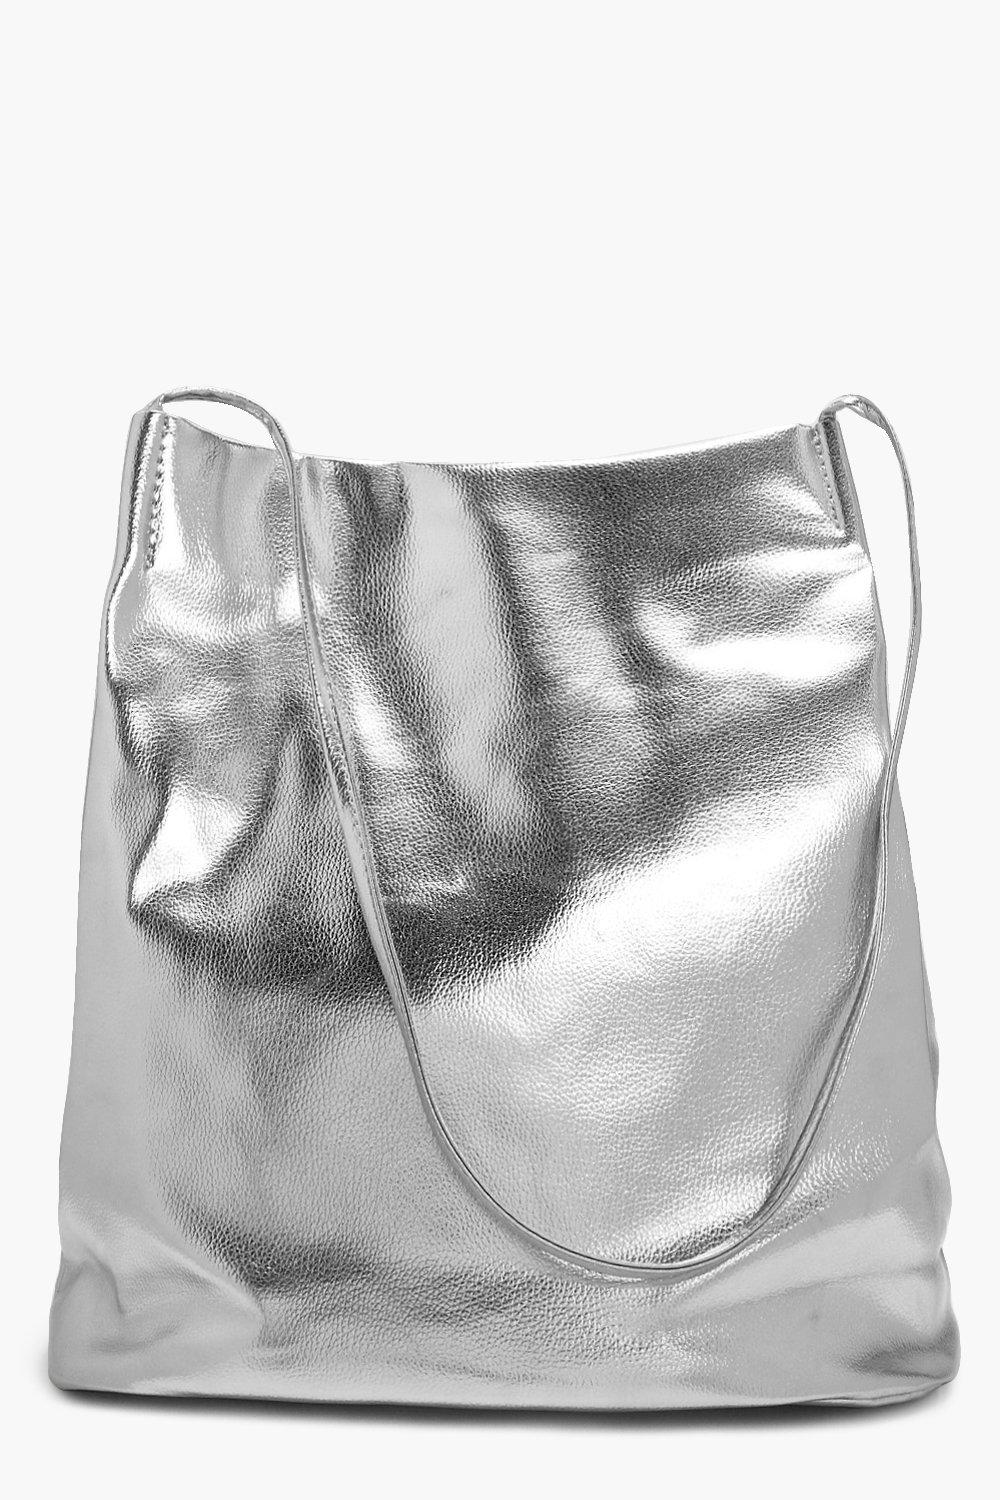 Metallic Duffle Cross Body - silver - Laura Metall